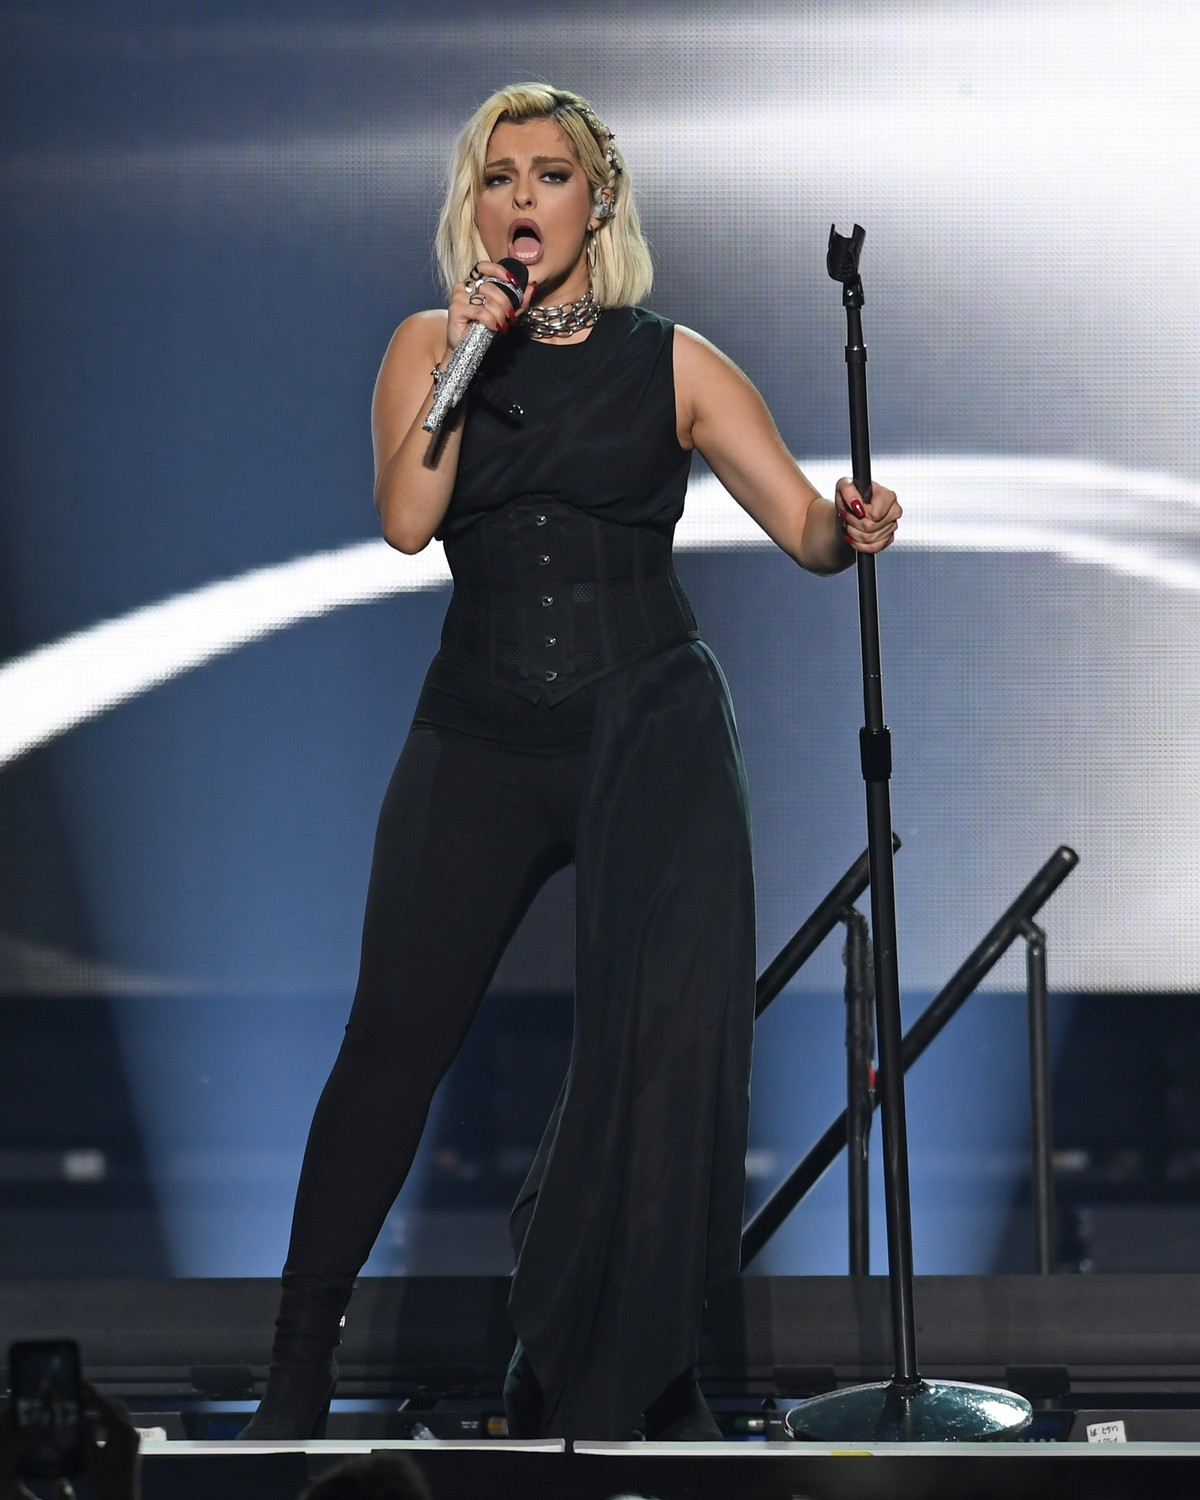 Bebe Rexha performs at the BB&T Center in Sunrise 2019/11/15 15